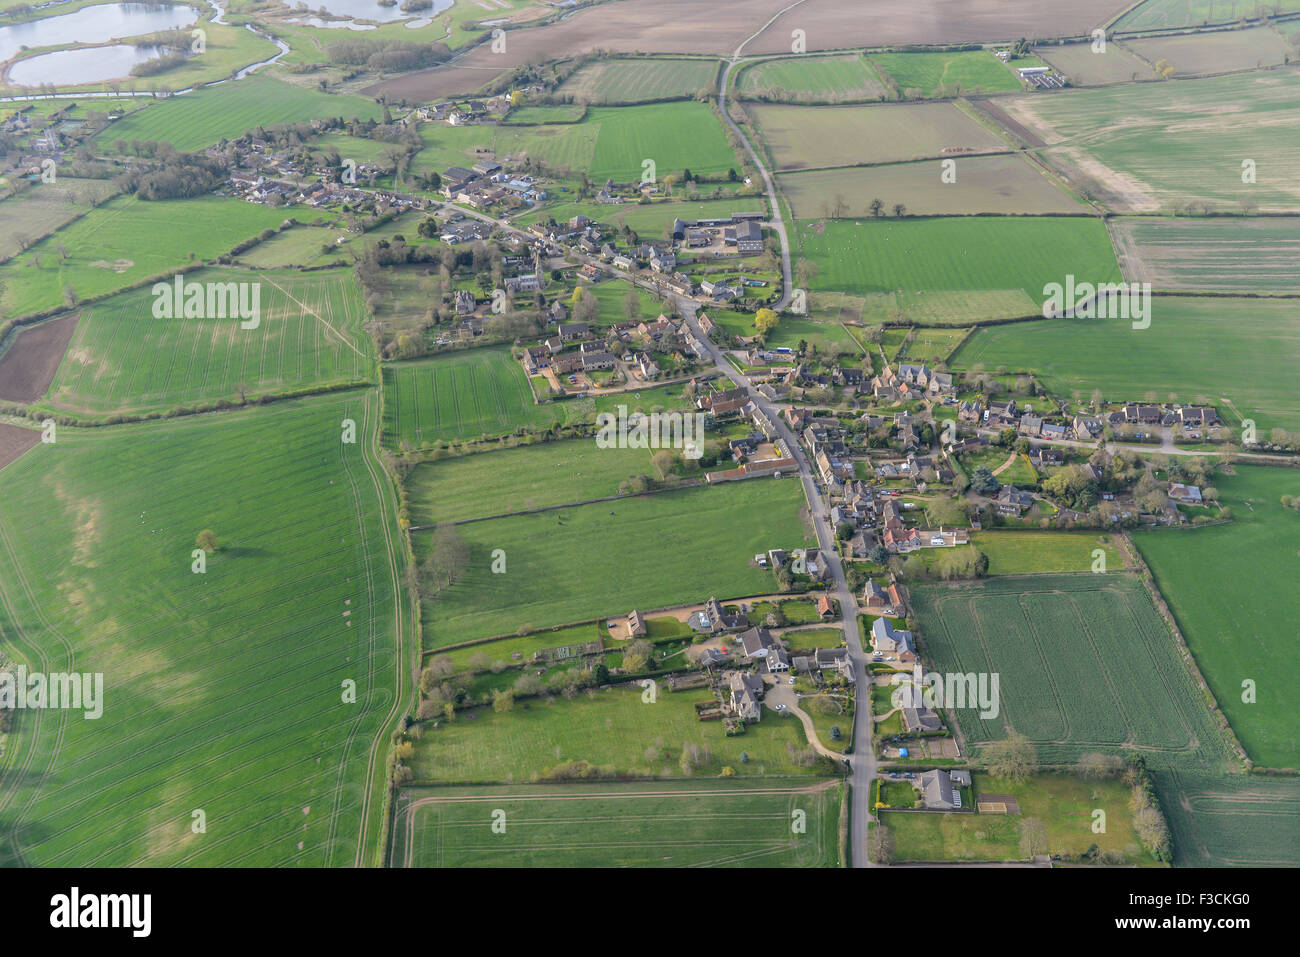 Aerial photograph of Aldwincle, Northamptonshire - Stock Image